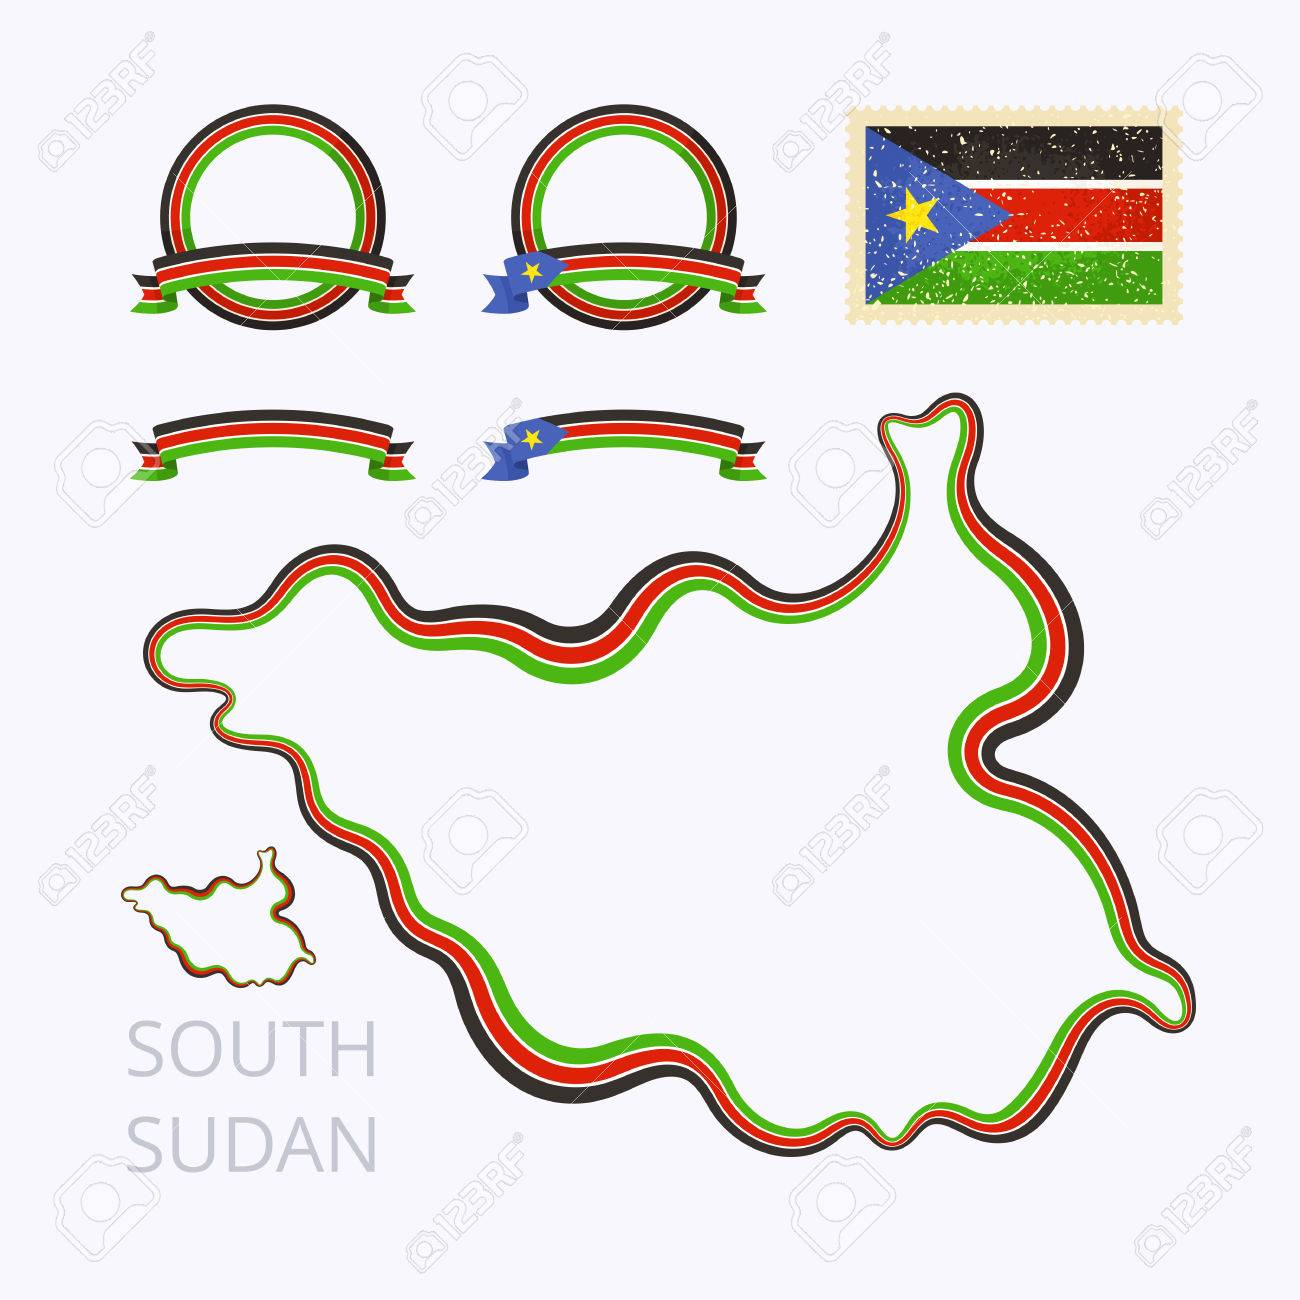 Outline Map Of South Sudan Border Is Marked With Ribbon In National - Package of map colors